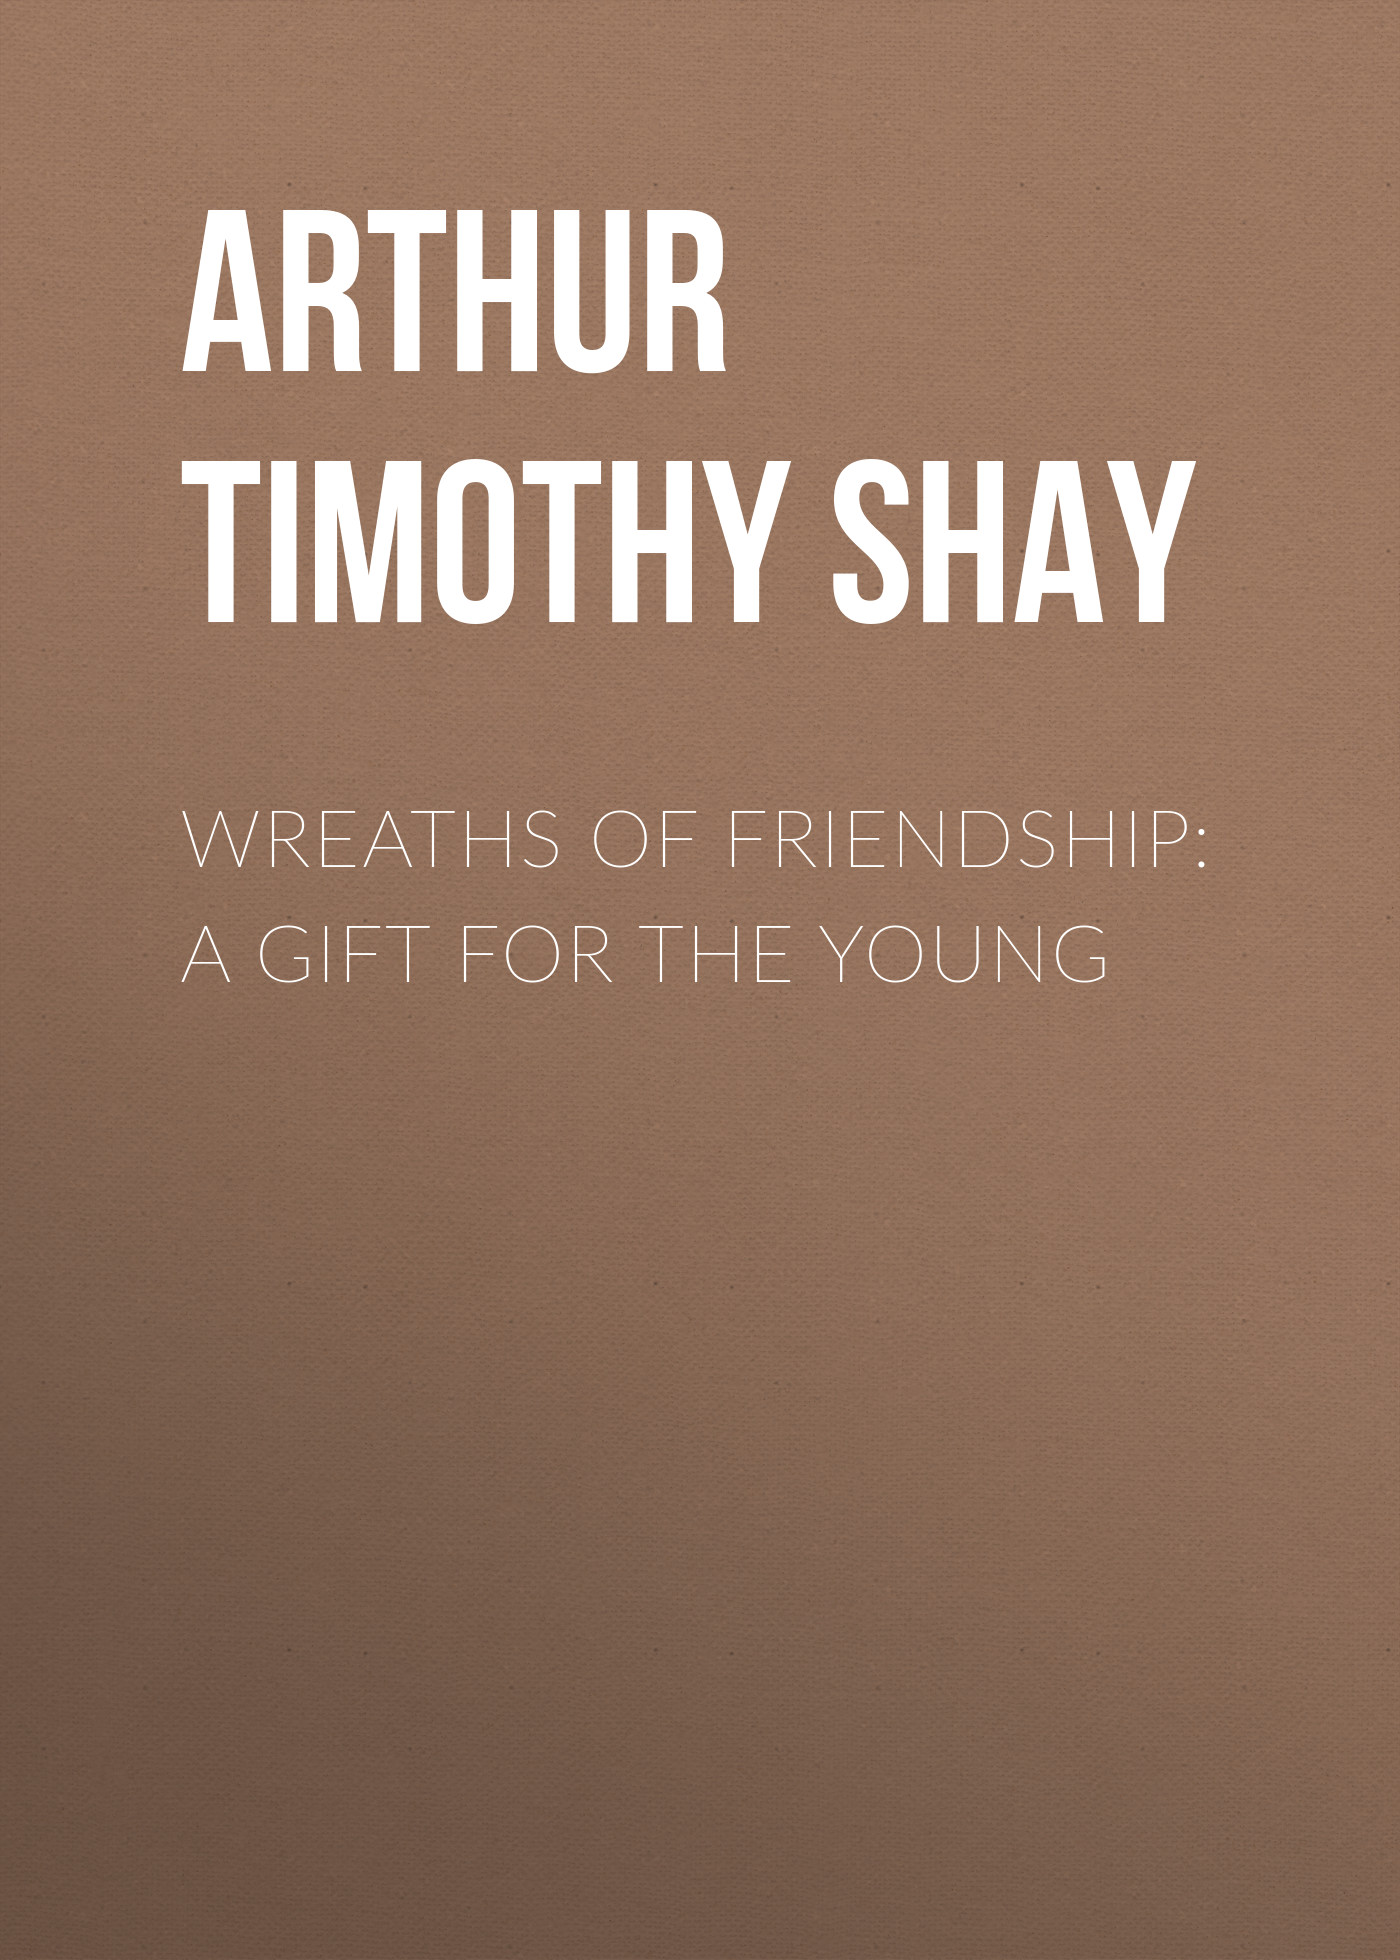 Arthur Timothy Shay Wreaths of Friendship: A Gift for the Young